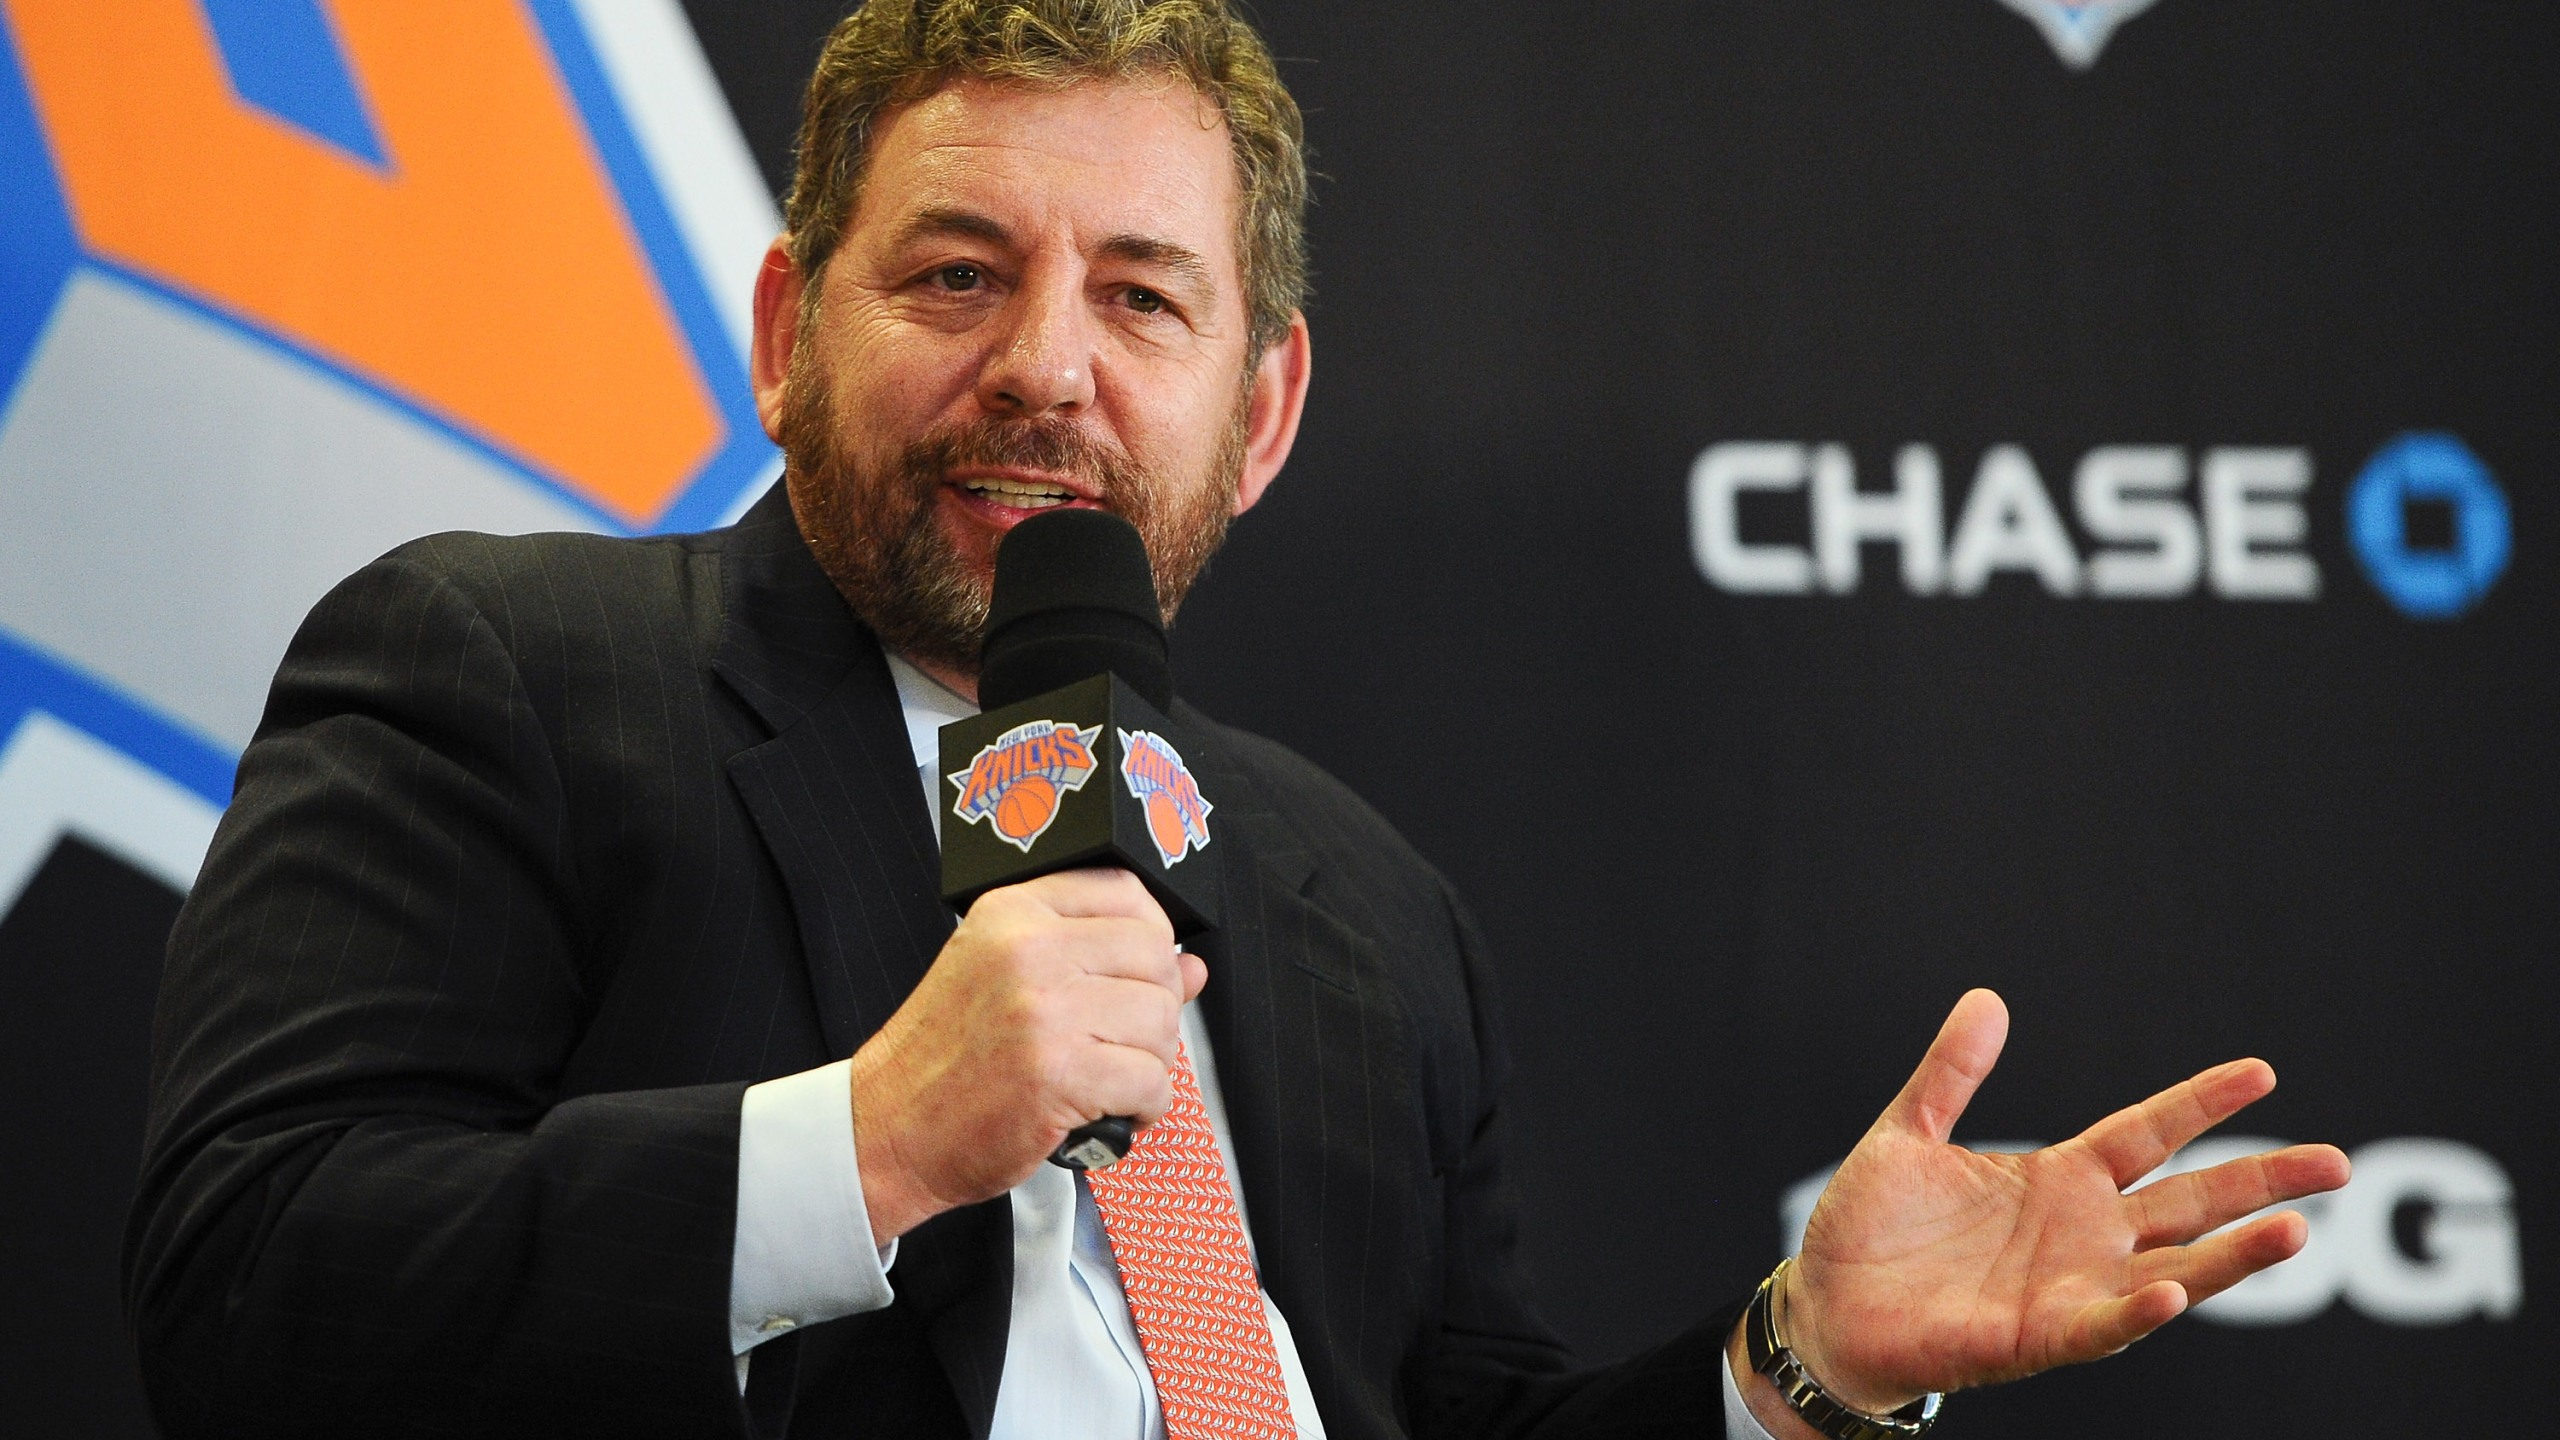 Knicks' Dolan rips fan in email, tells him to root for Nets